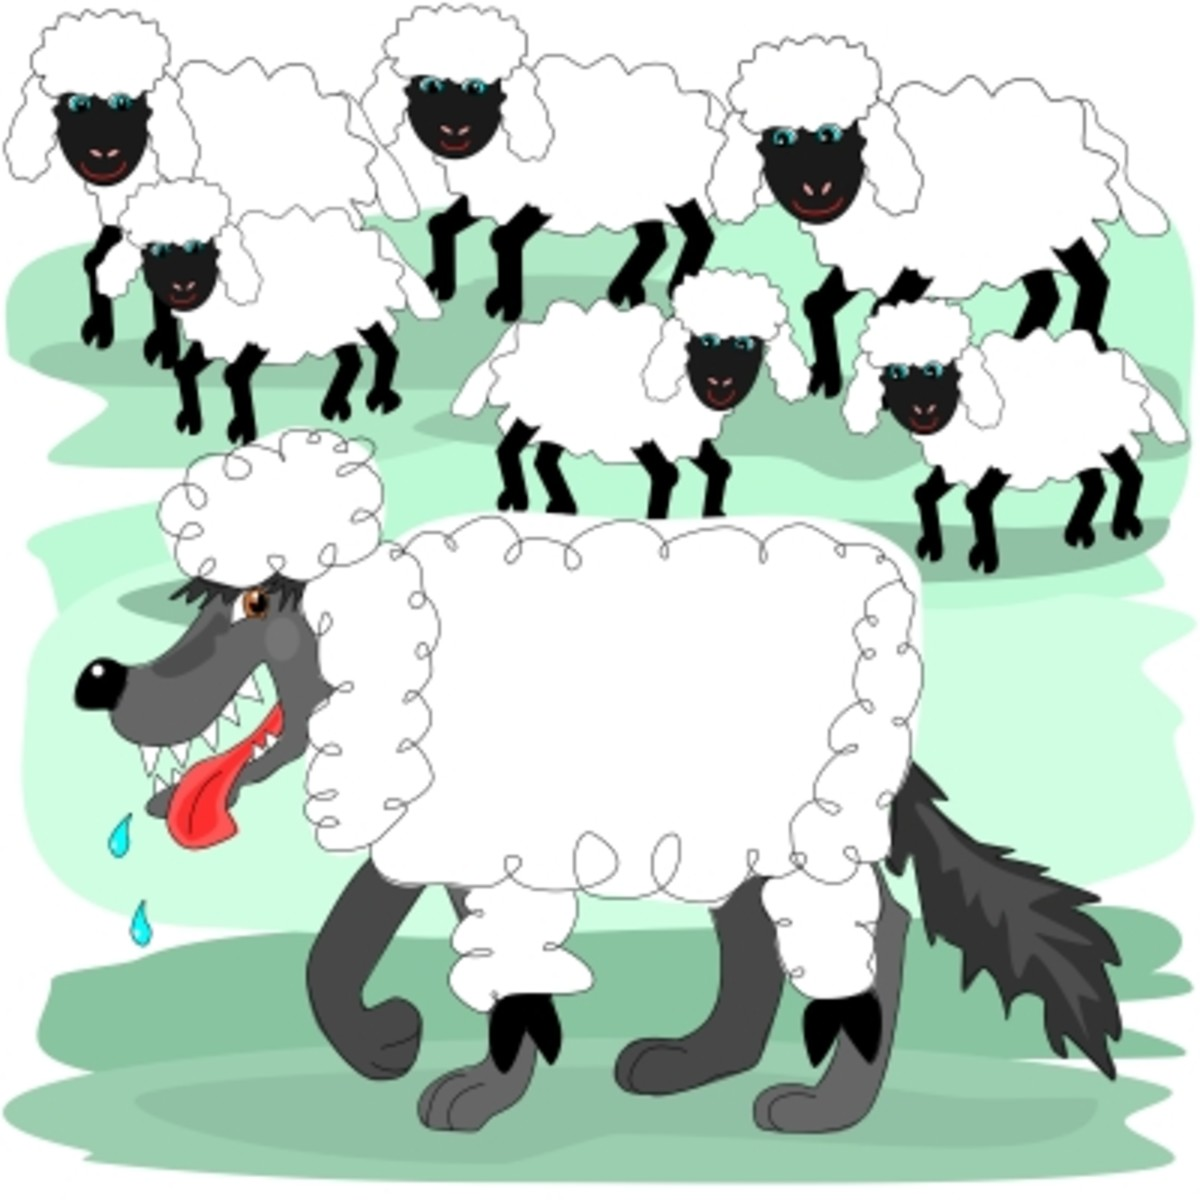 Pray protection from the wolves in sheep's clothing who are in his flock.